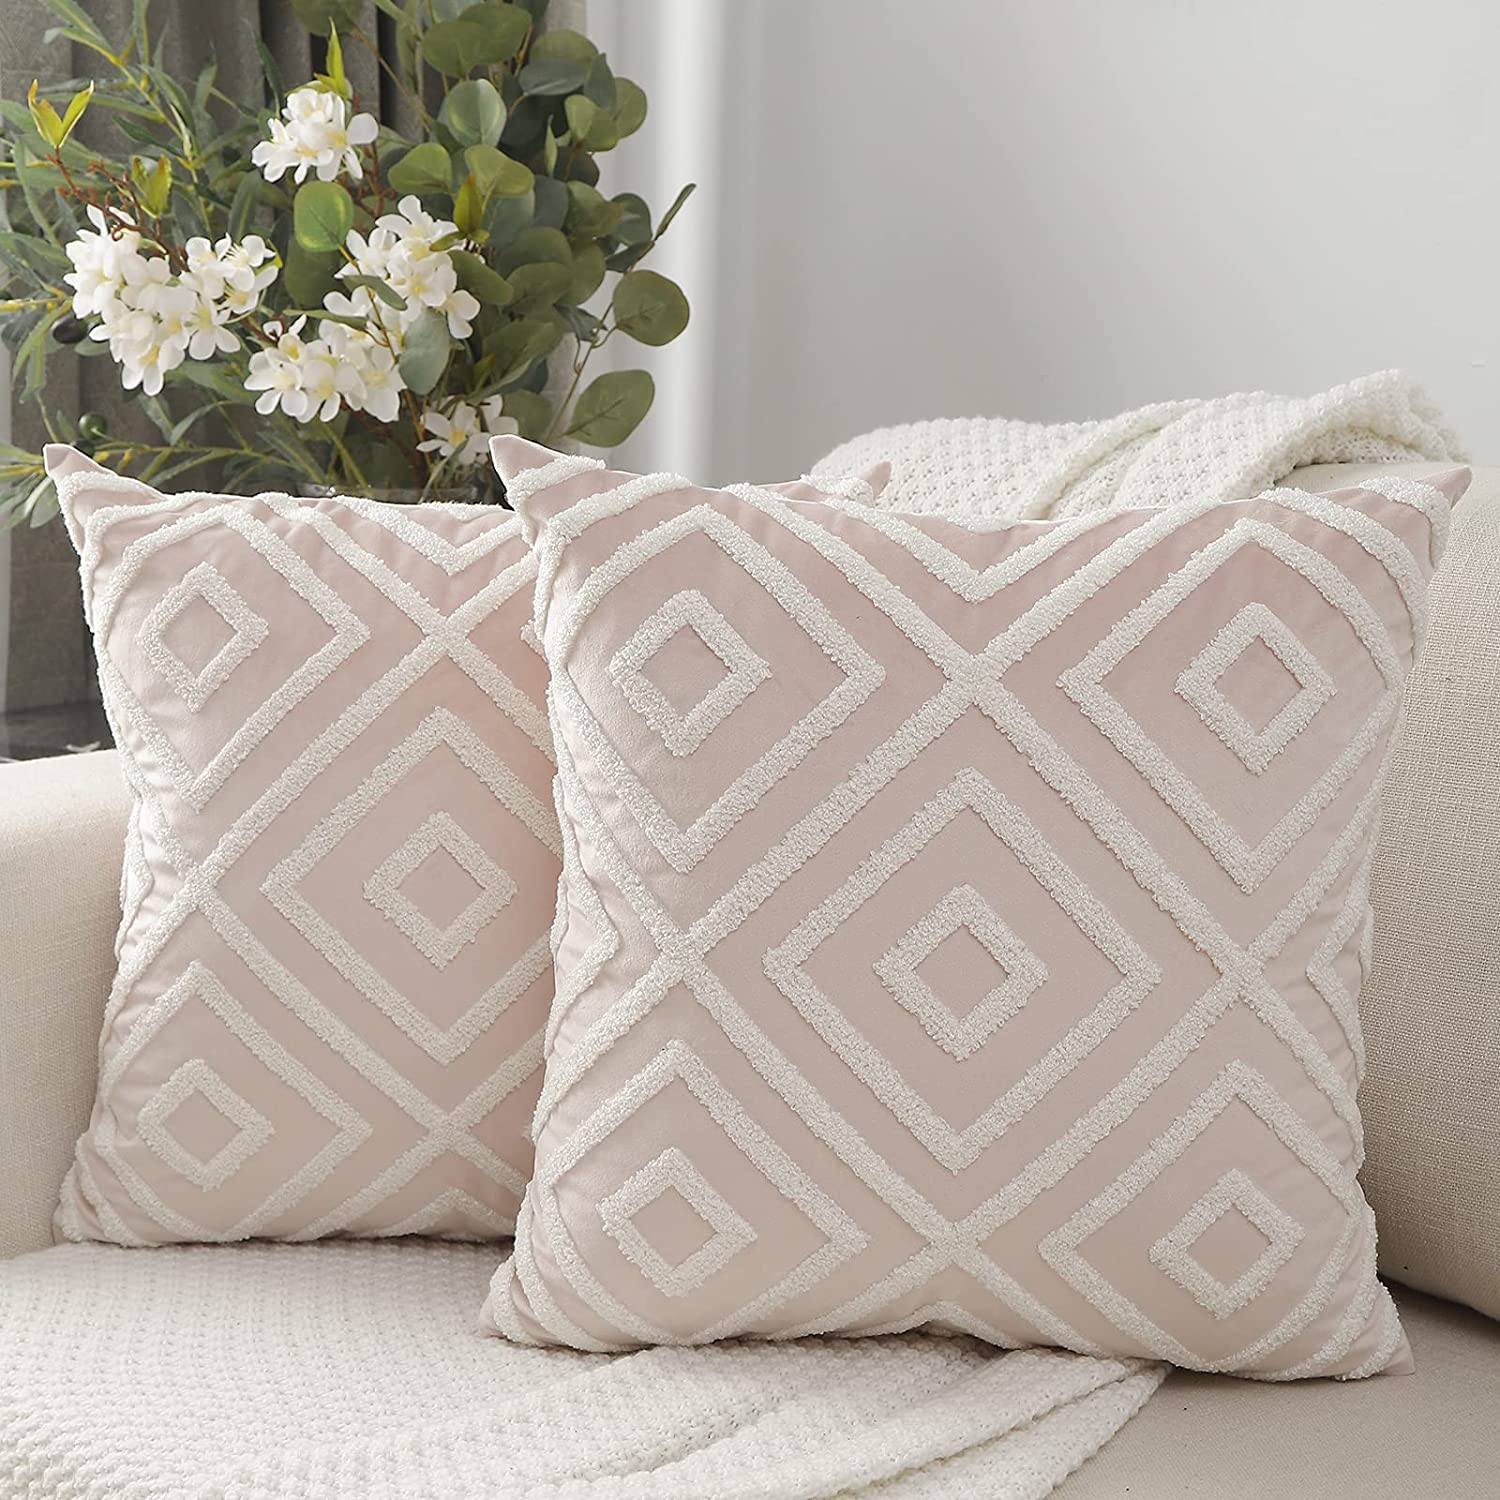 Max 59% OFF Vancl Boho Tufted Decorative It is very popular Pink Covers Throw Velv 18x18 Pillow